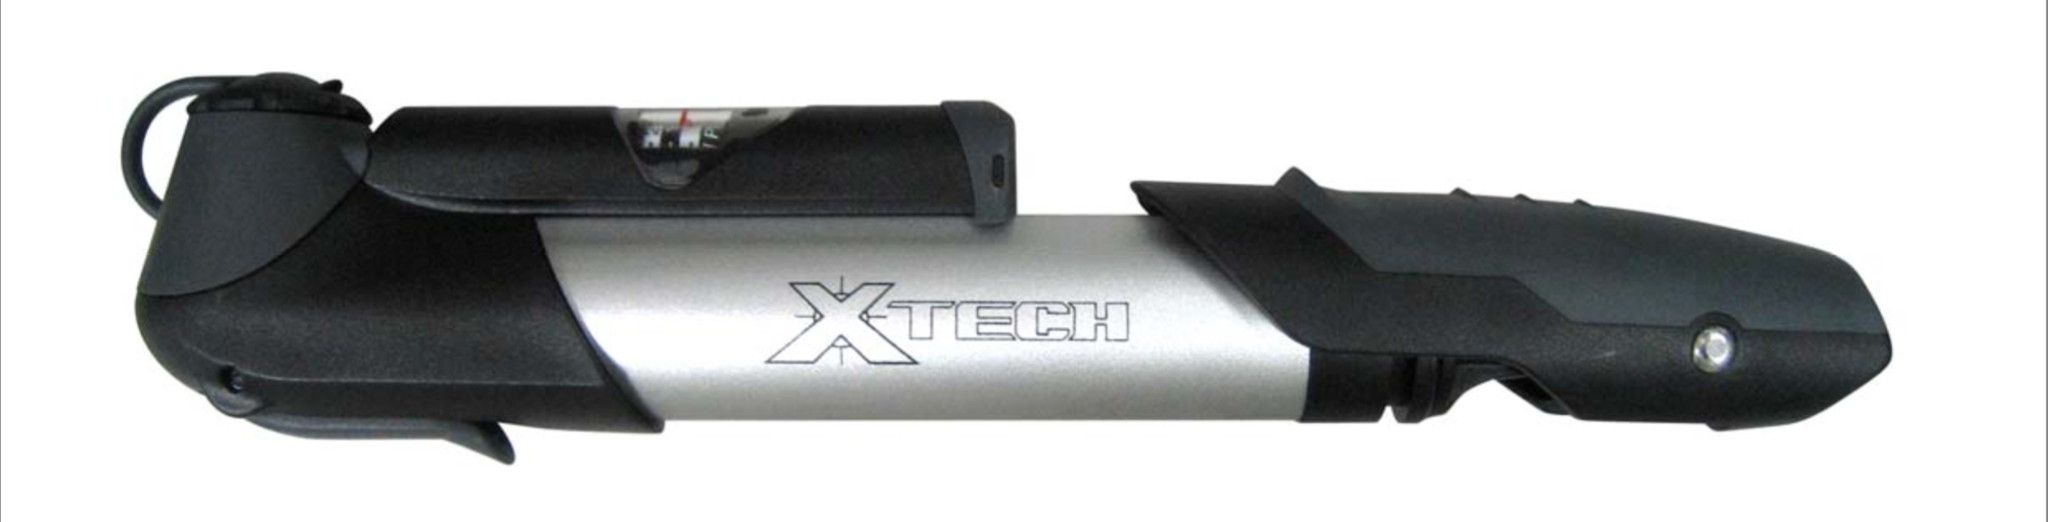 X - Tech Mini Hand Pump